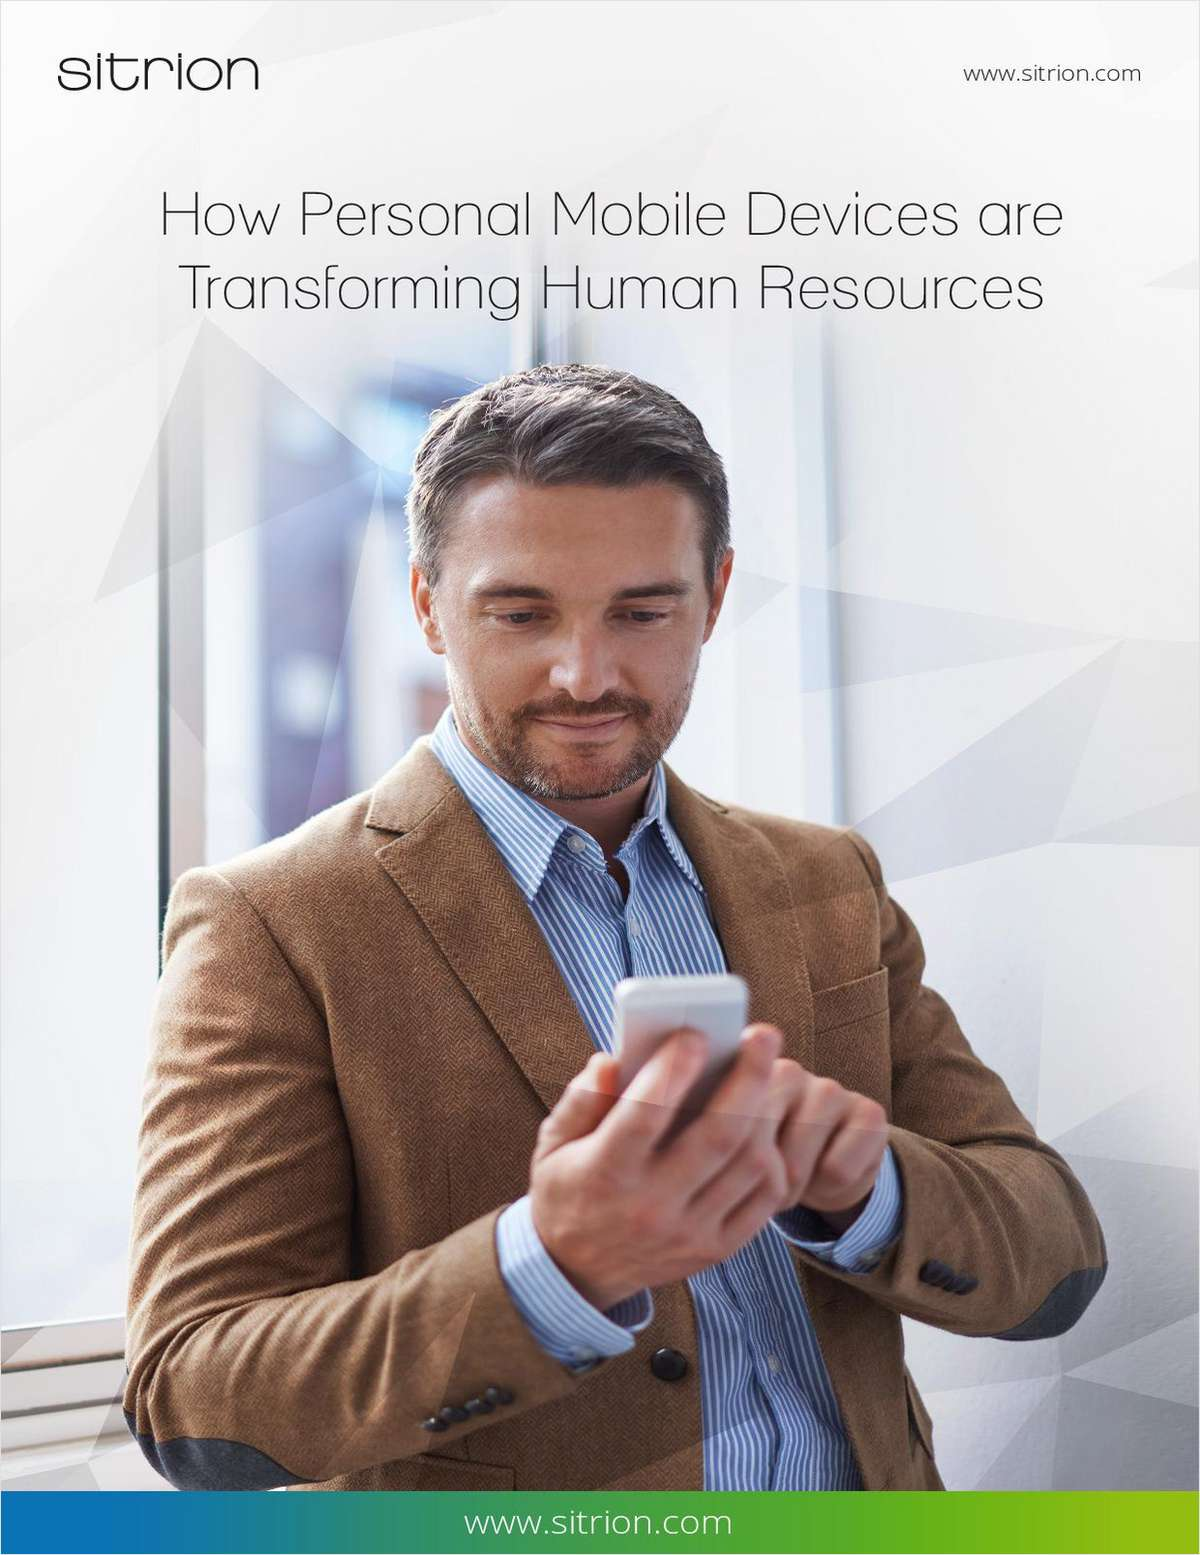 How Personal Mobile Devices are Transforming Human Resources